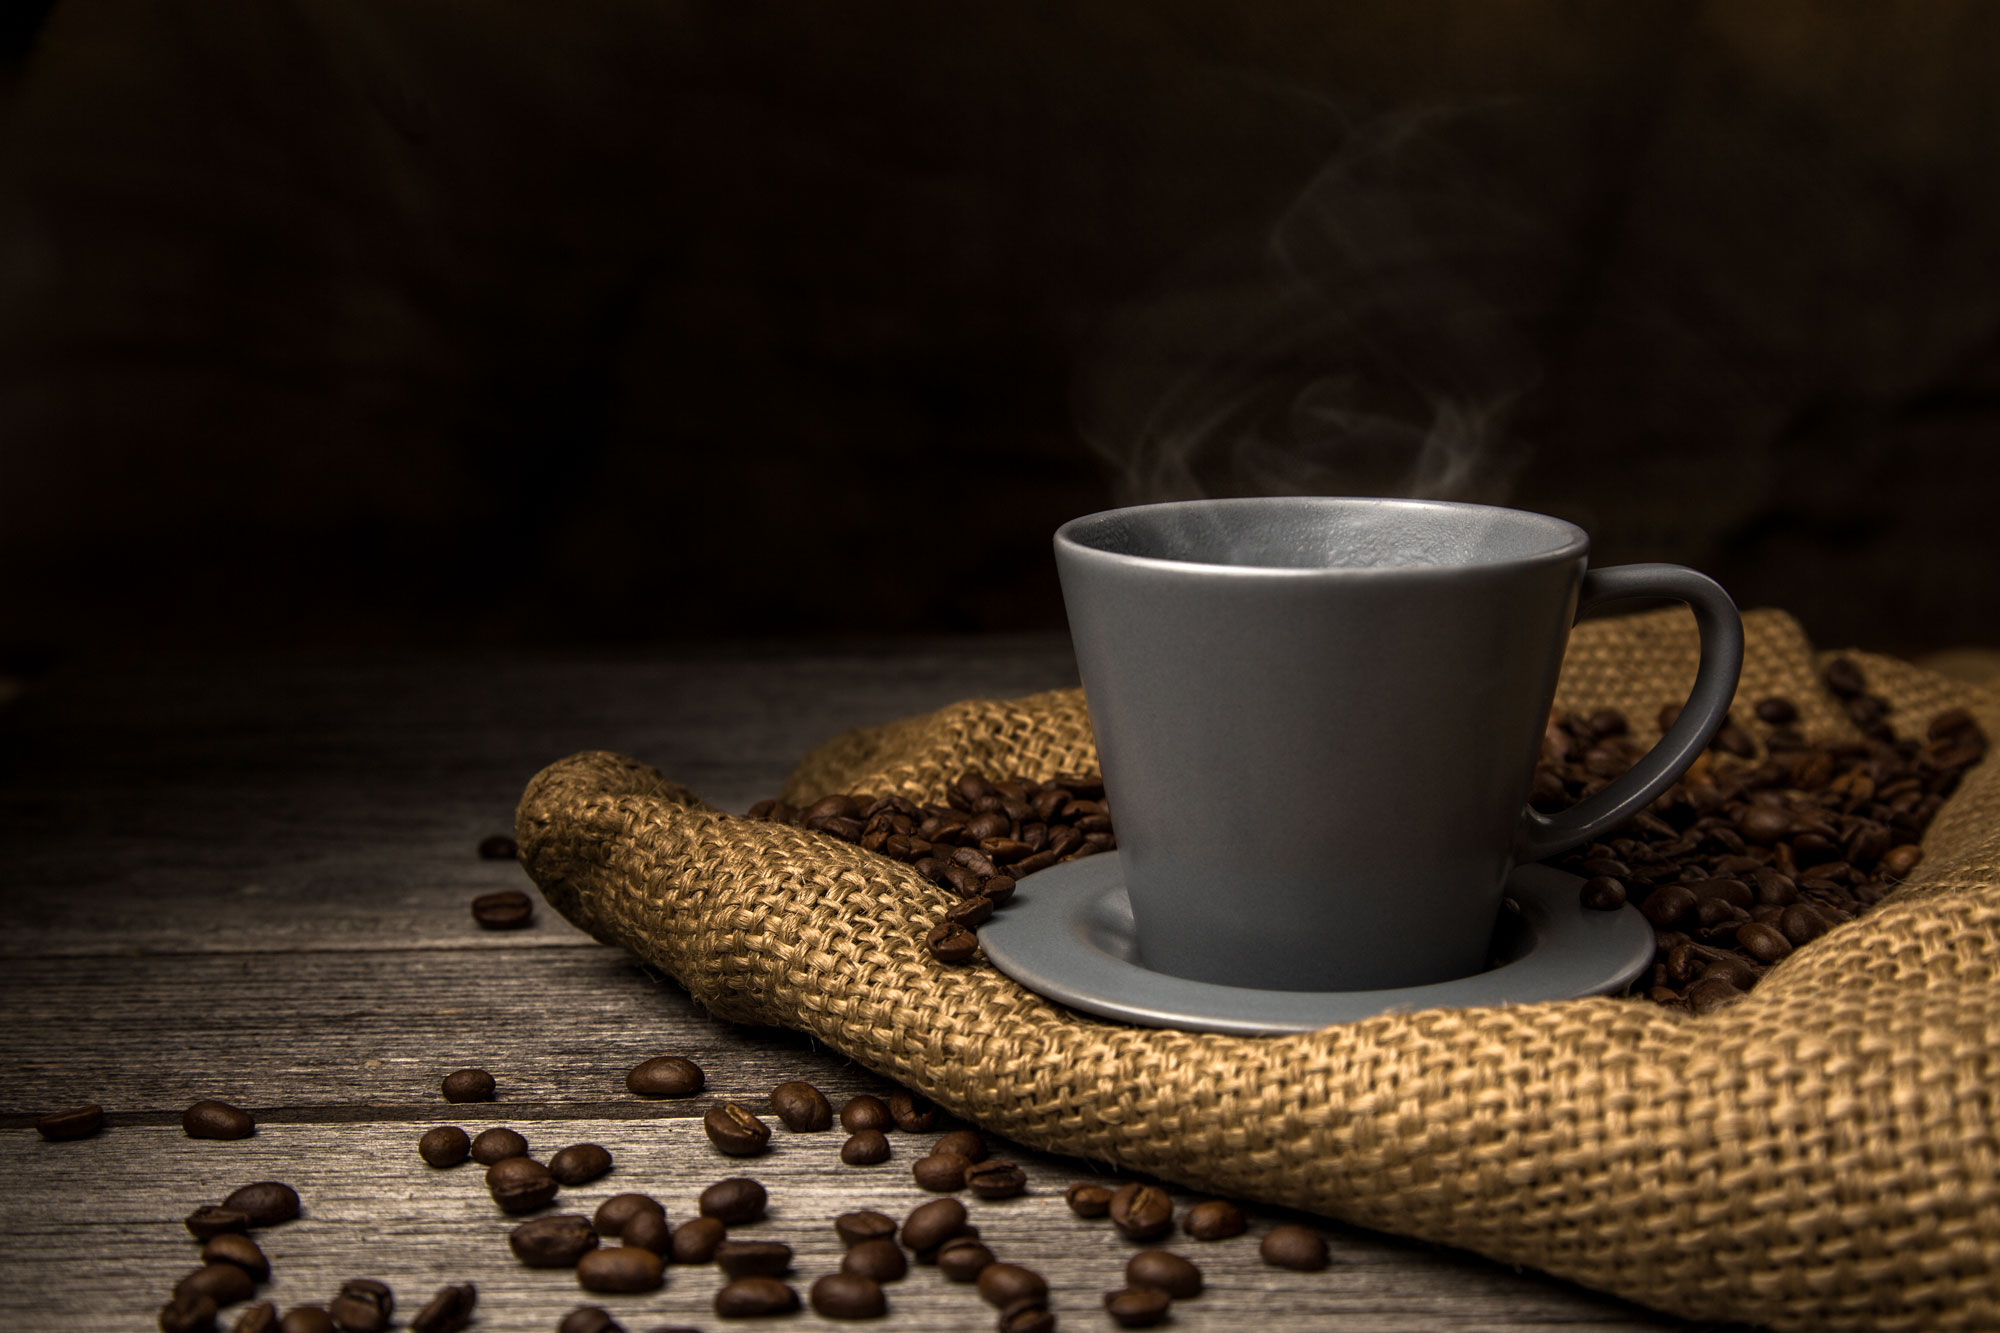 Coffee moody photography by Adrian Kilchherr ; Food and Beverage Photographer Europe.